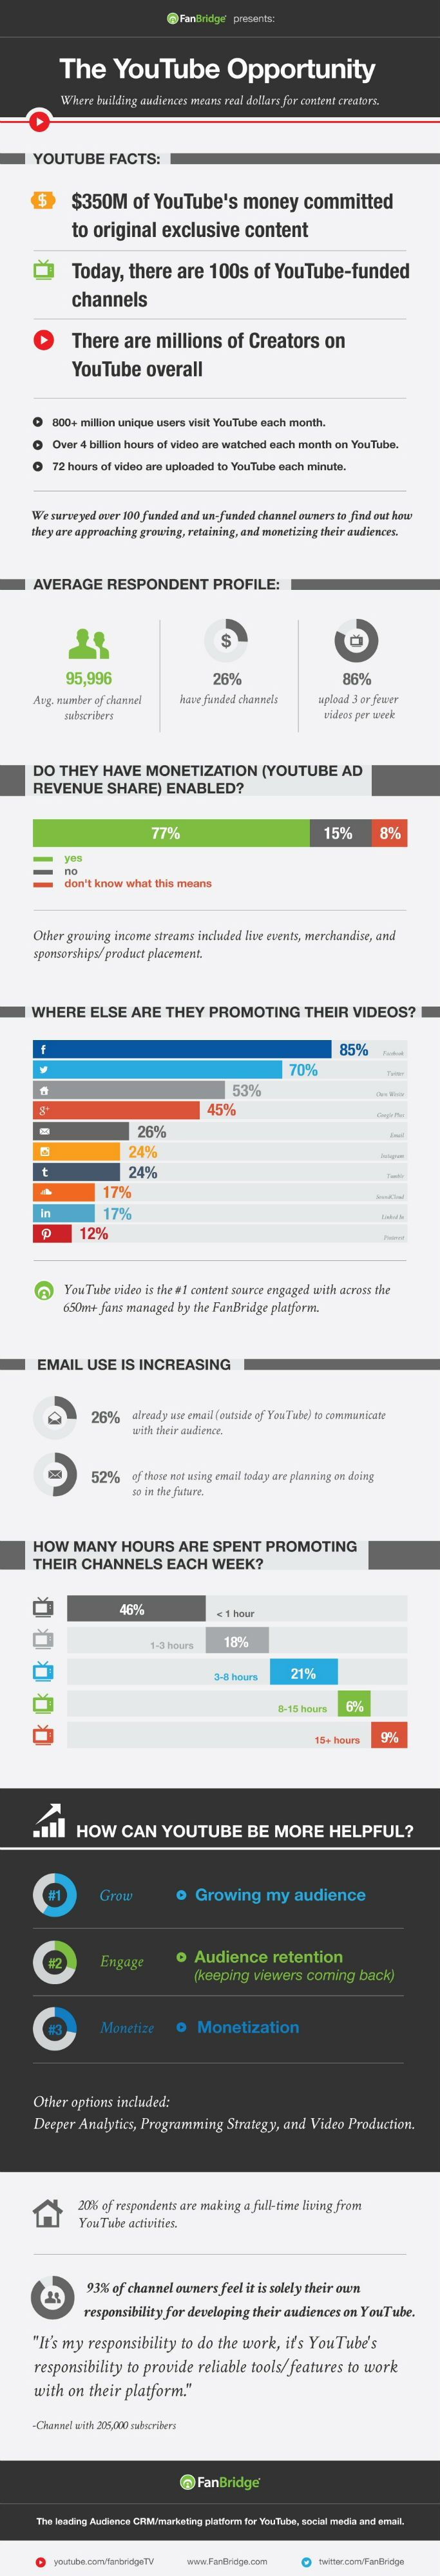 """""""How YouTube Channel Owners Are Building Audiences [INFOGRAPHIC]"""""""